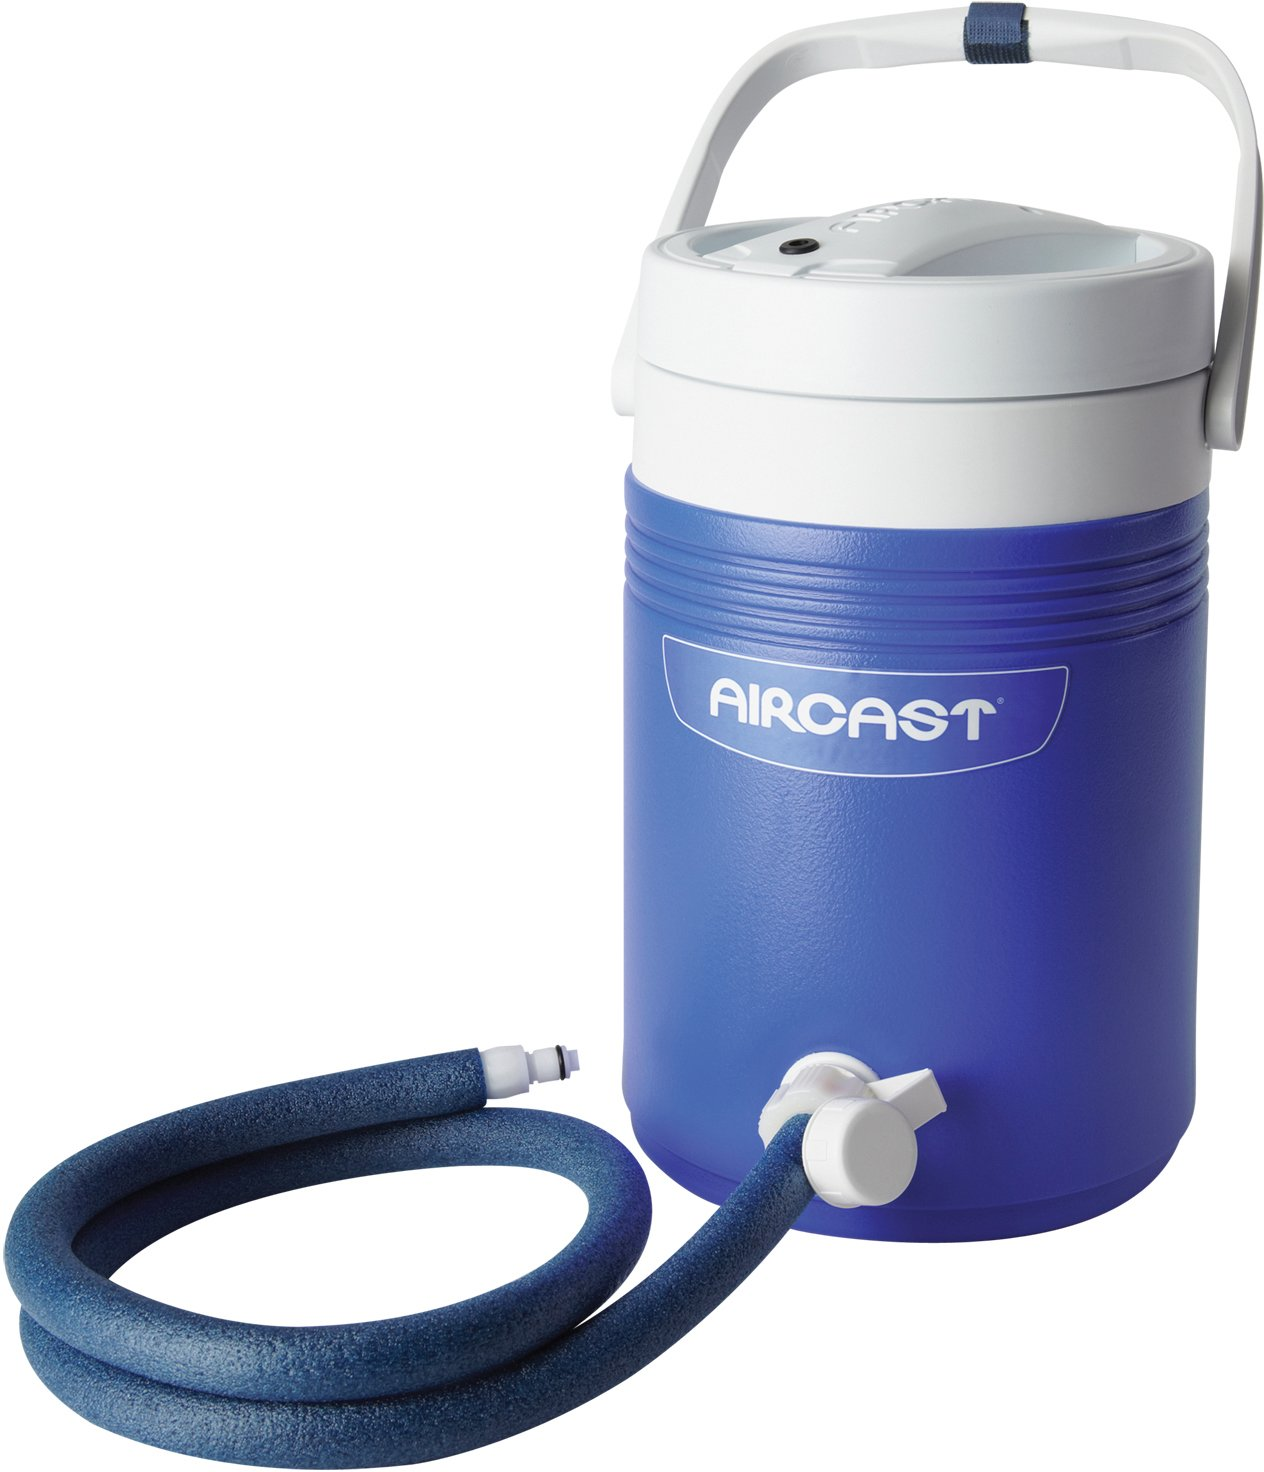 Aircast Cooler